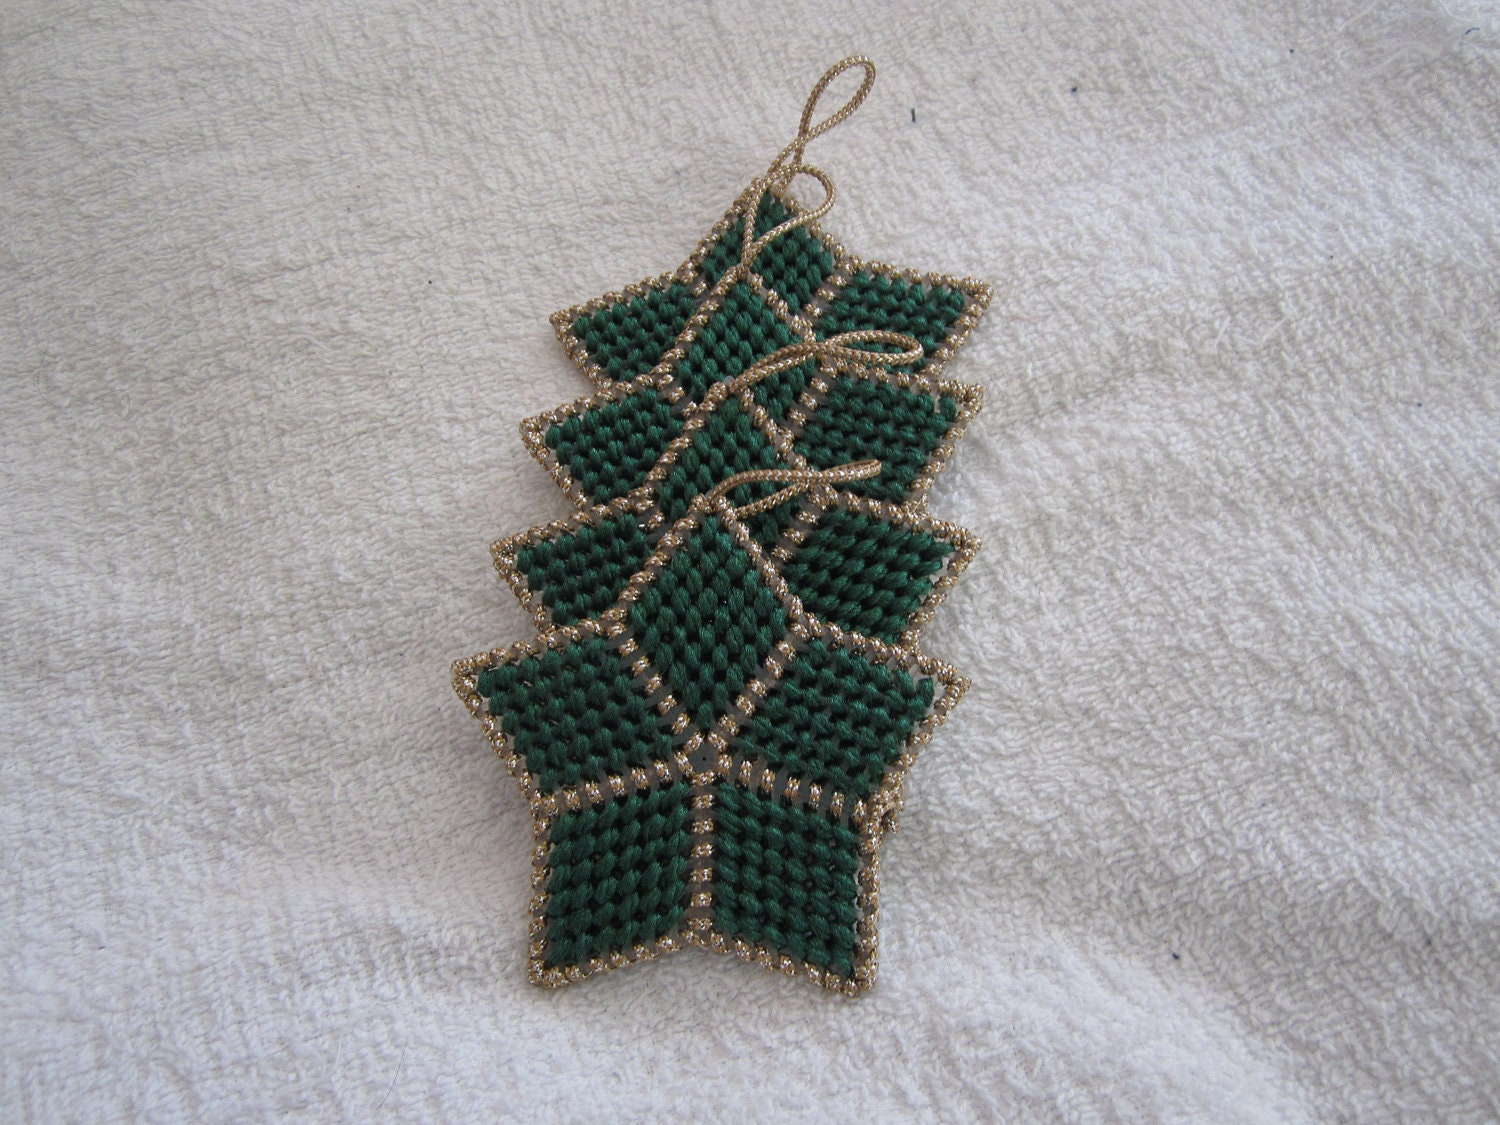 GREEN & GOLD STAR Christmas Ornaments in Plastic Canvas